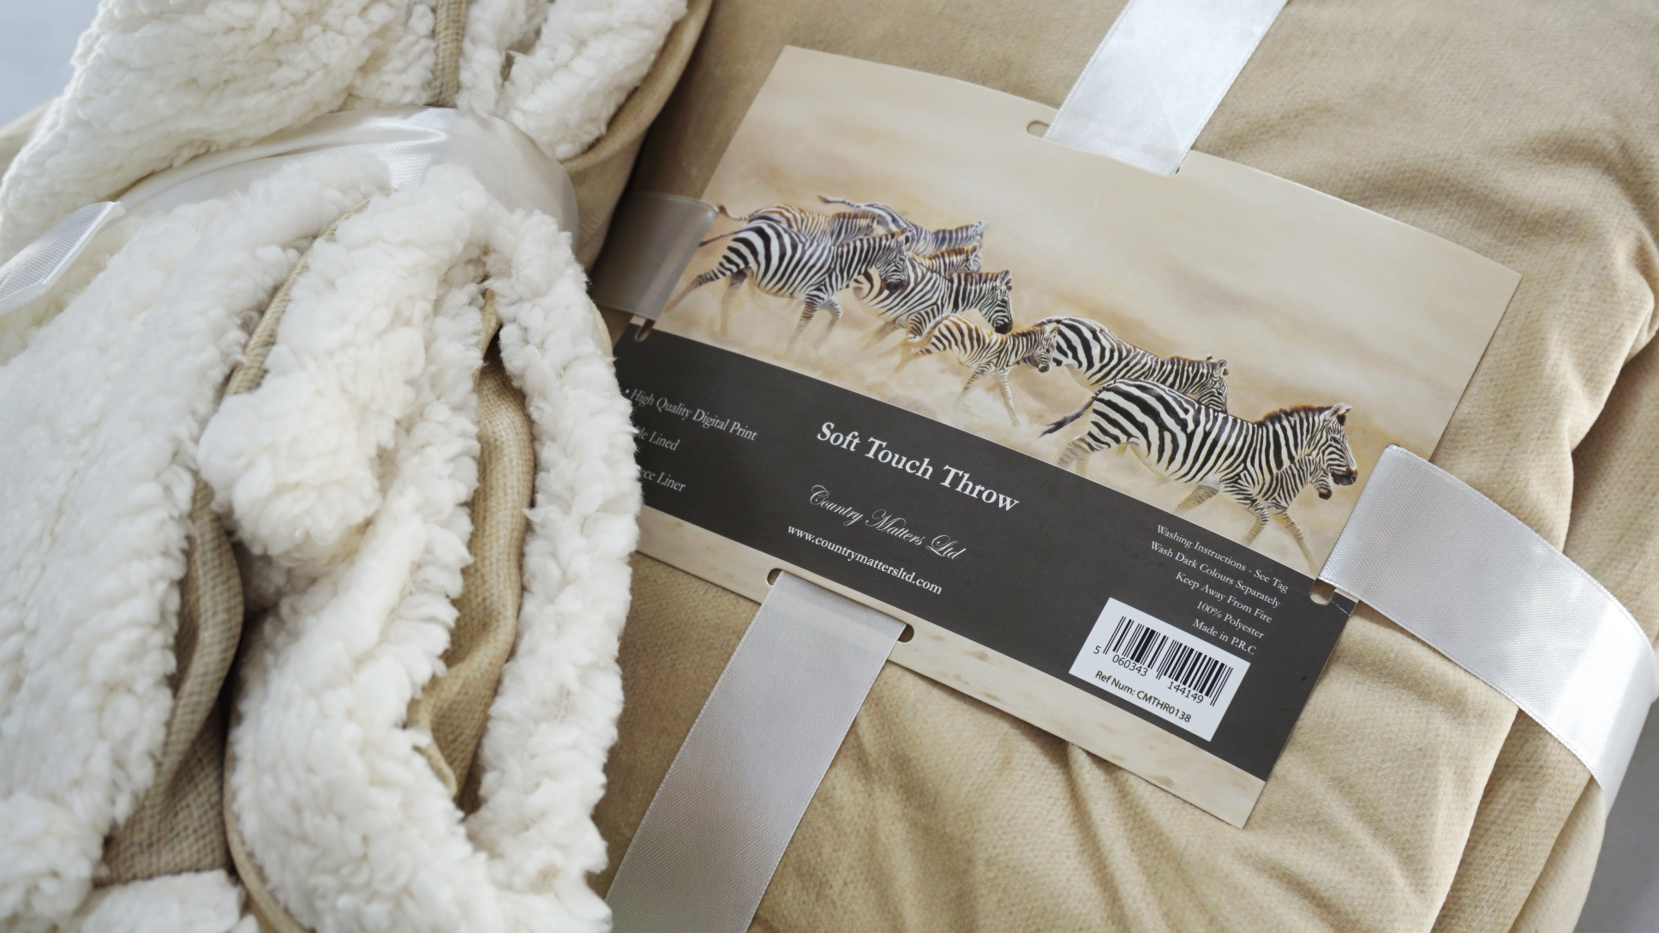 African wildlife collection - Featuring artwork by award-winning wildlife conservation artist on a range of beautiful homeware. A 20% donation to Rhino conservation.